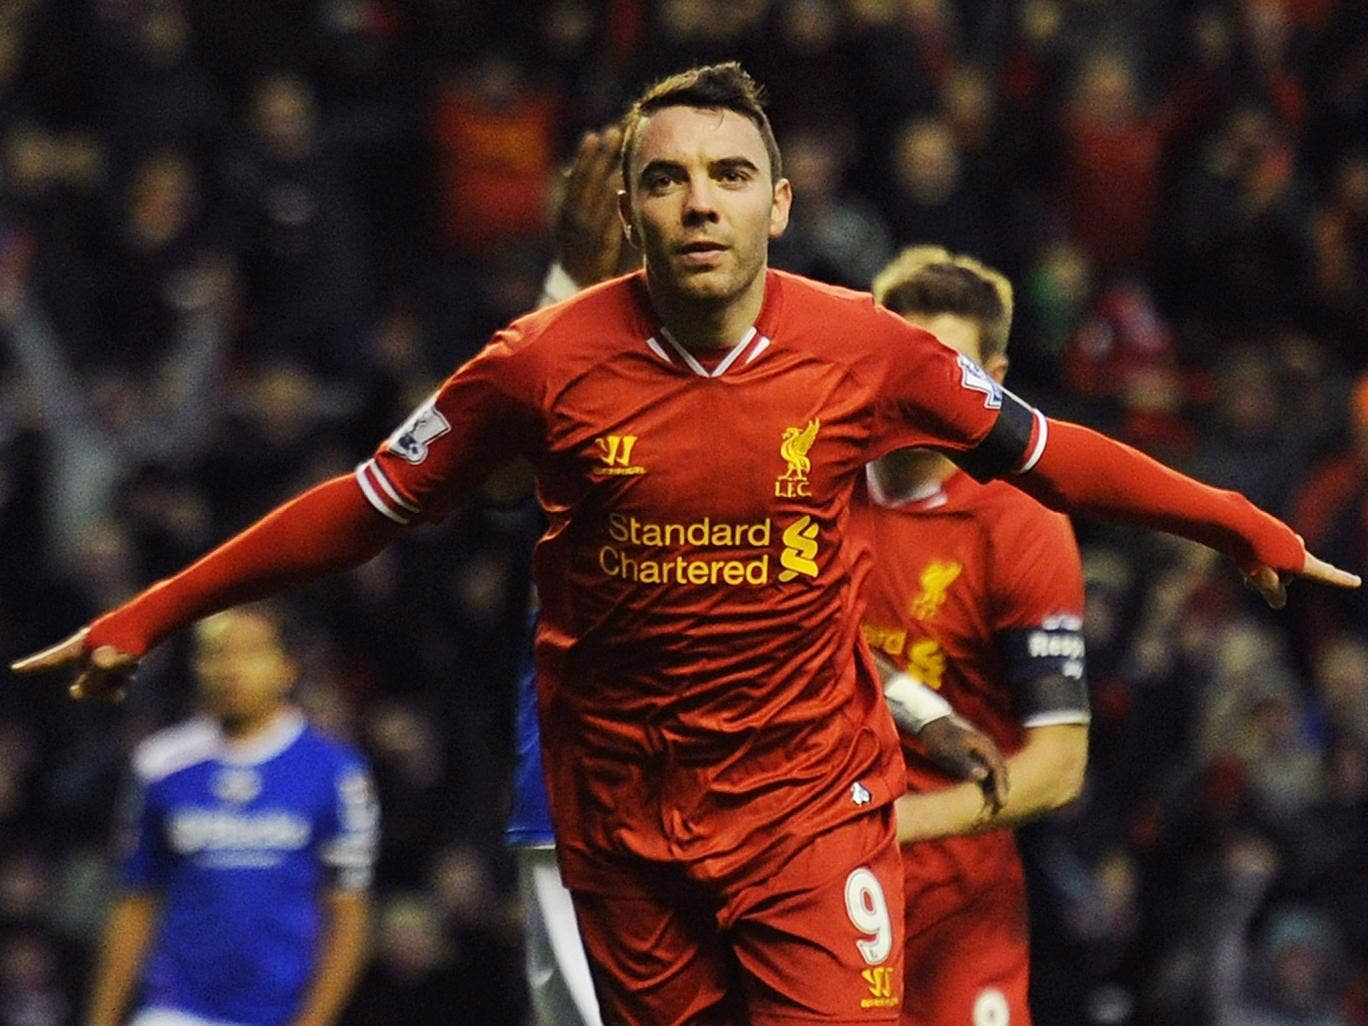 Iago Aspas scored the opening goal in Liverpool's 2-0 FA Cup win over Oldham Athletic